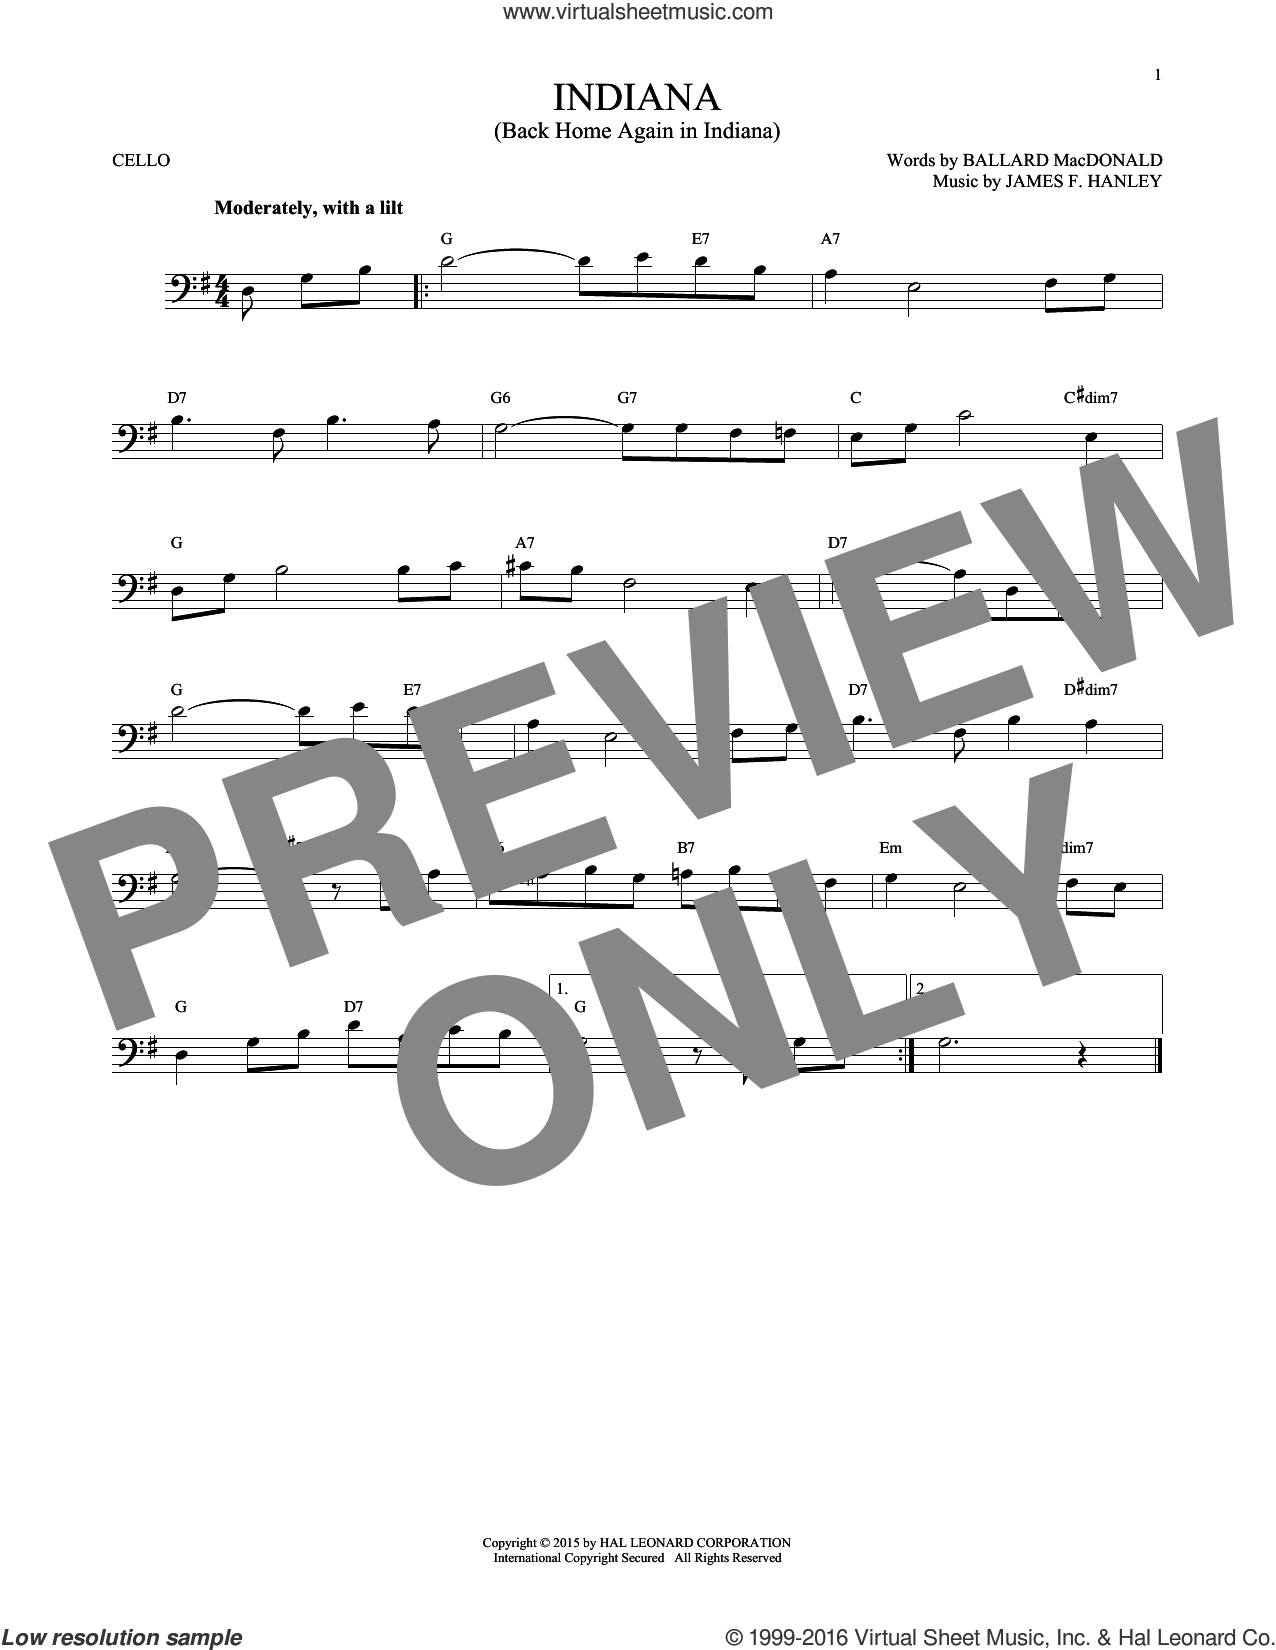 Indiana (Back Home Again In Indiana) sheet music for cello solo by Ballard MacDonald and James Hanley, intermediate skill level